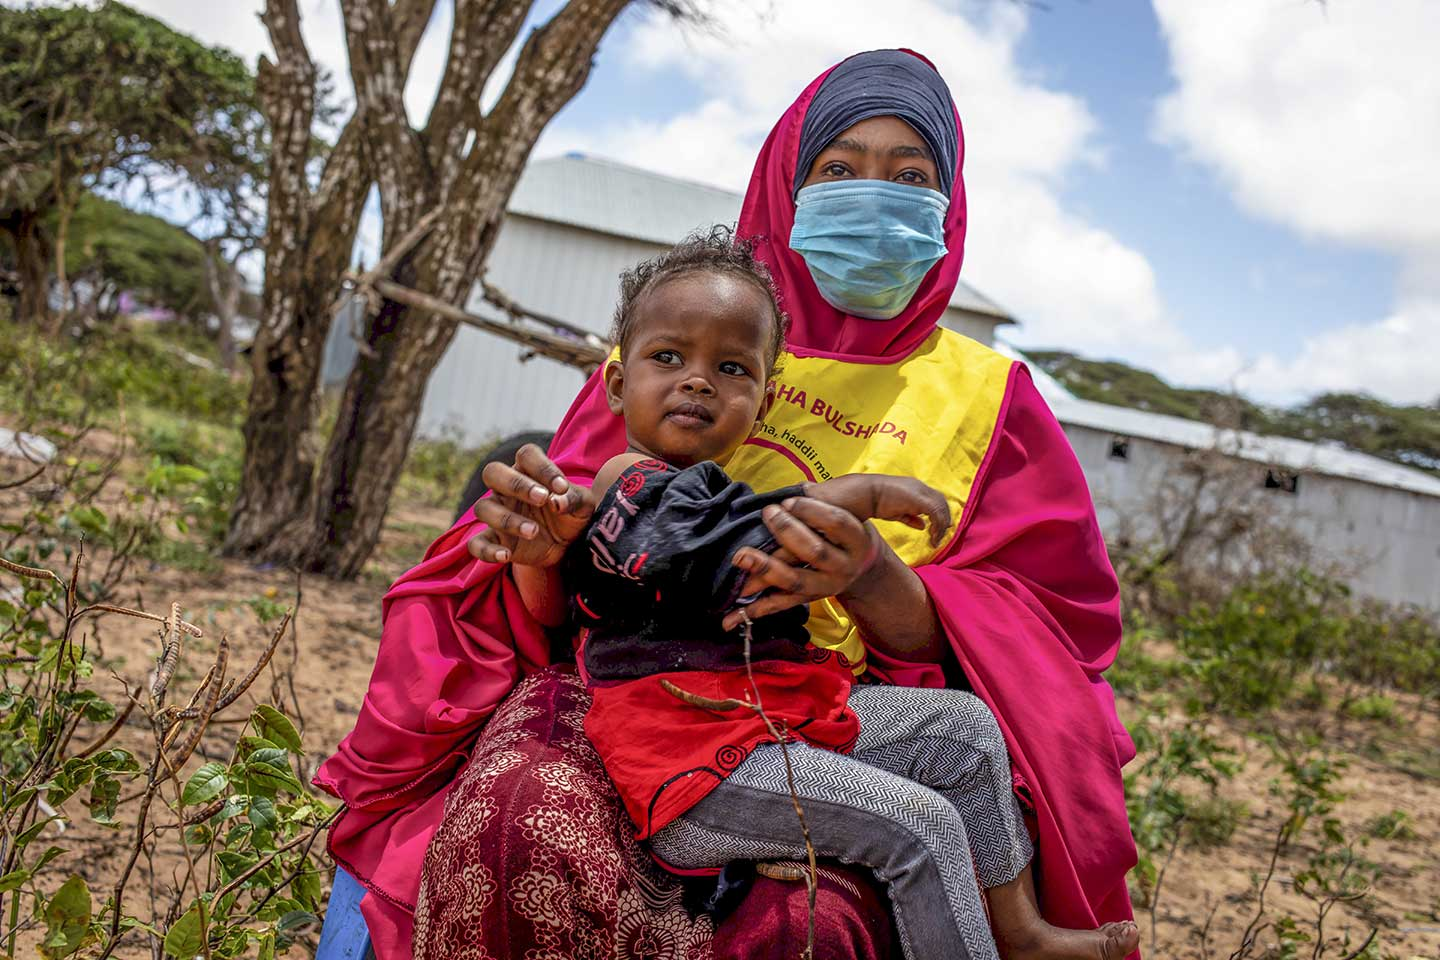 A young girl waits to be vaccinated during national polio and measles vaccination campaign in Mogadishu, Somalia on Tuesday 01 September 2020. Photo Ismail Taxta / Ildoog/WHO SOMALIA